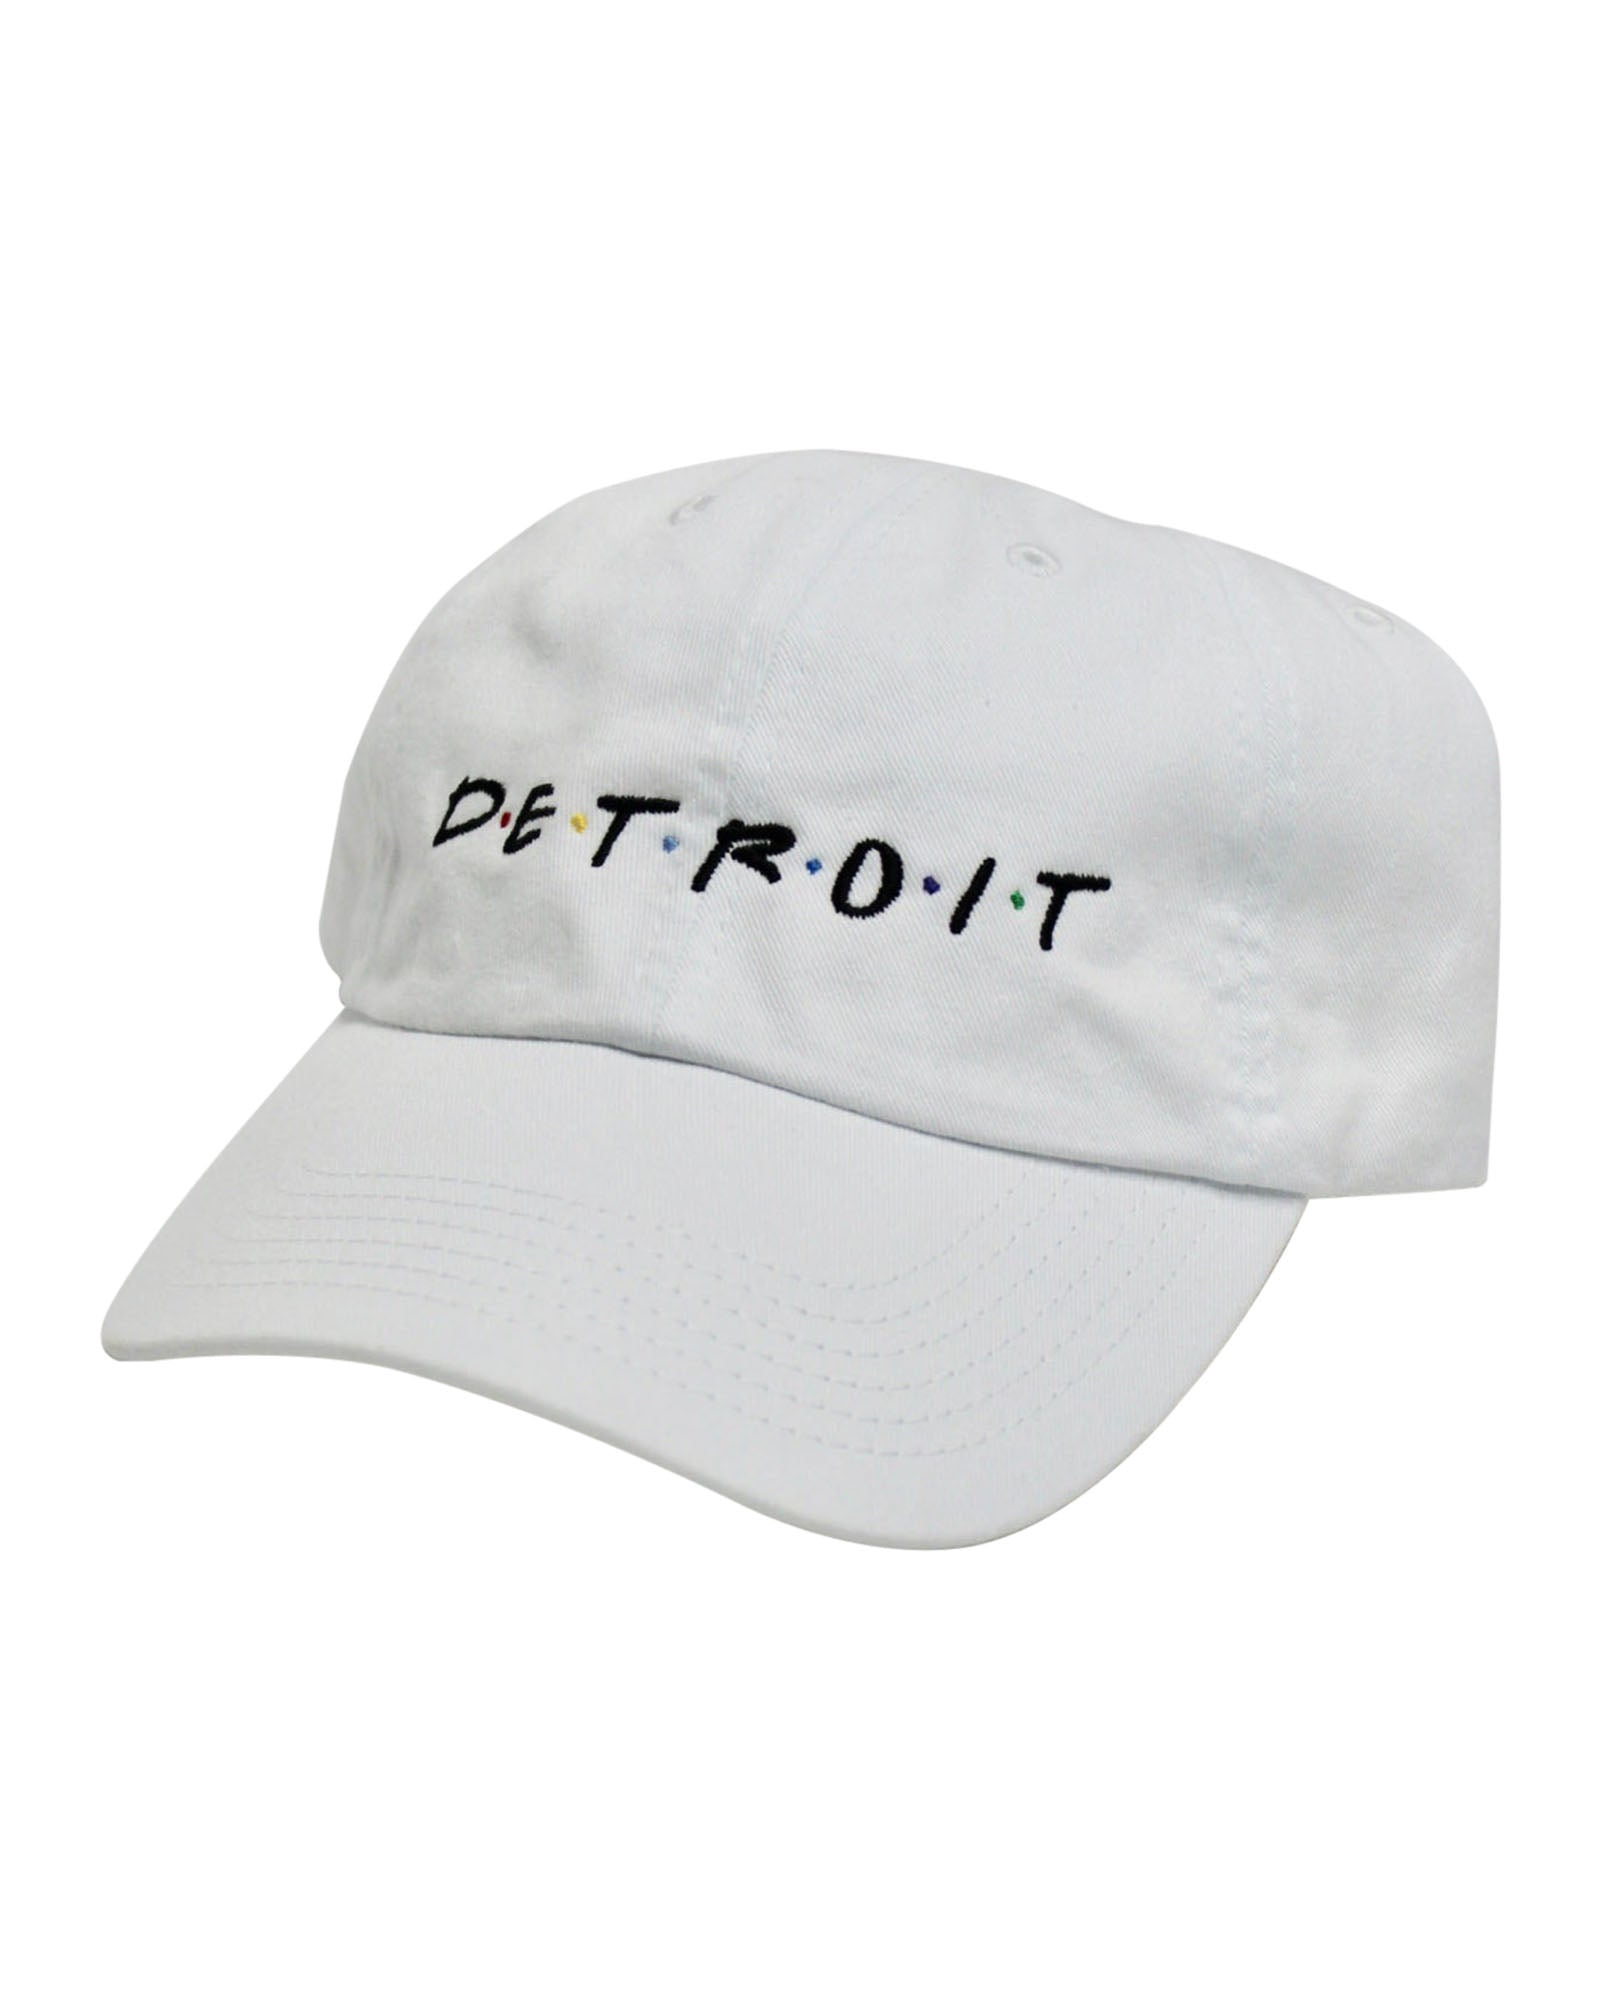 a7b2f2dfc Detroit Friends Dad Cap